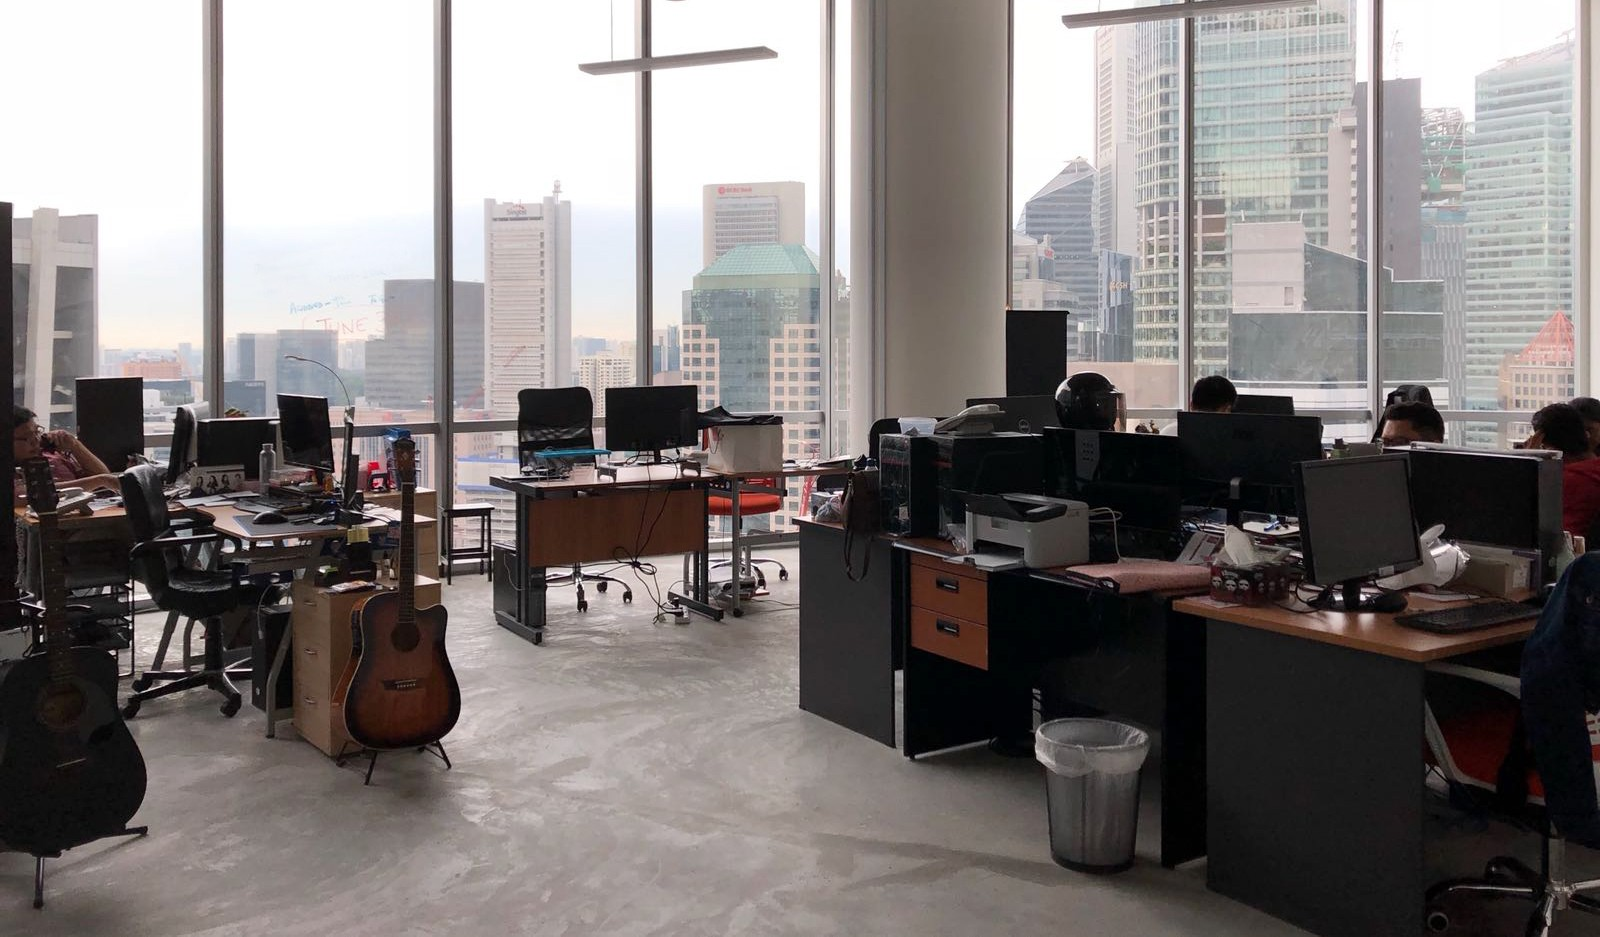 Office_webpuppies_